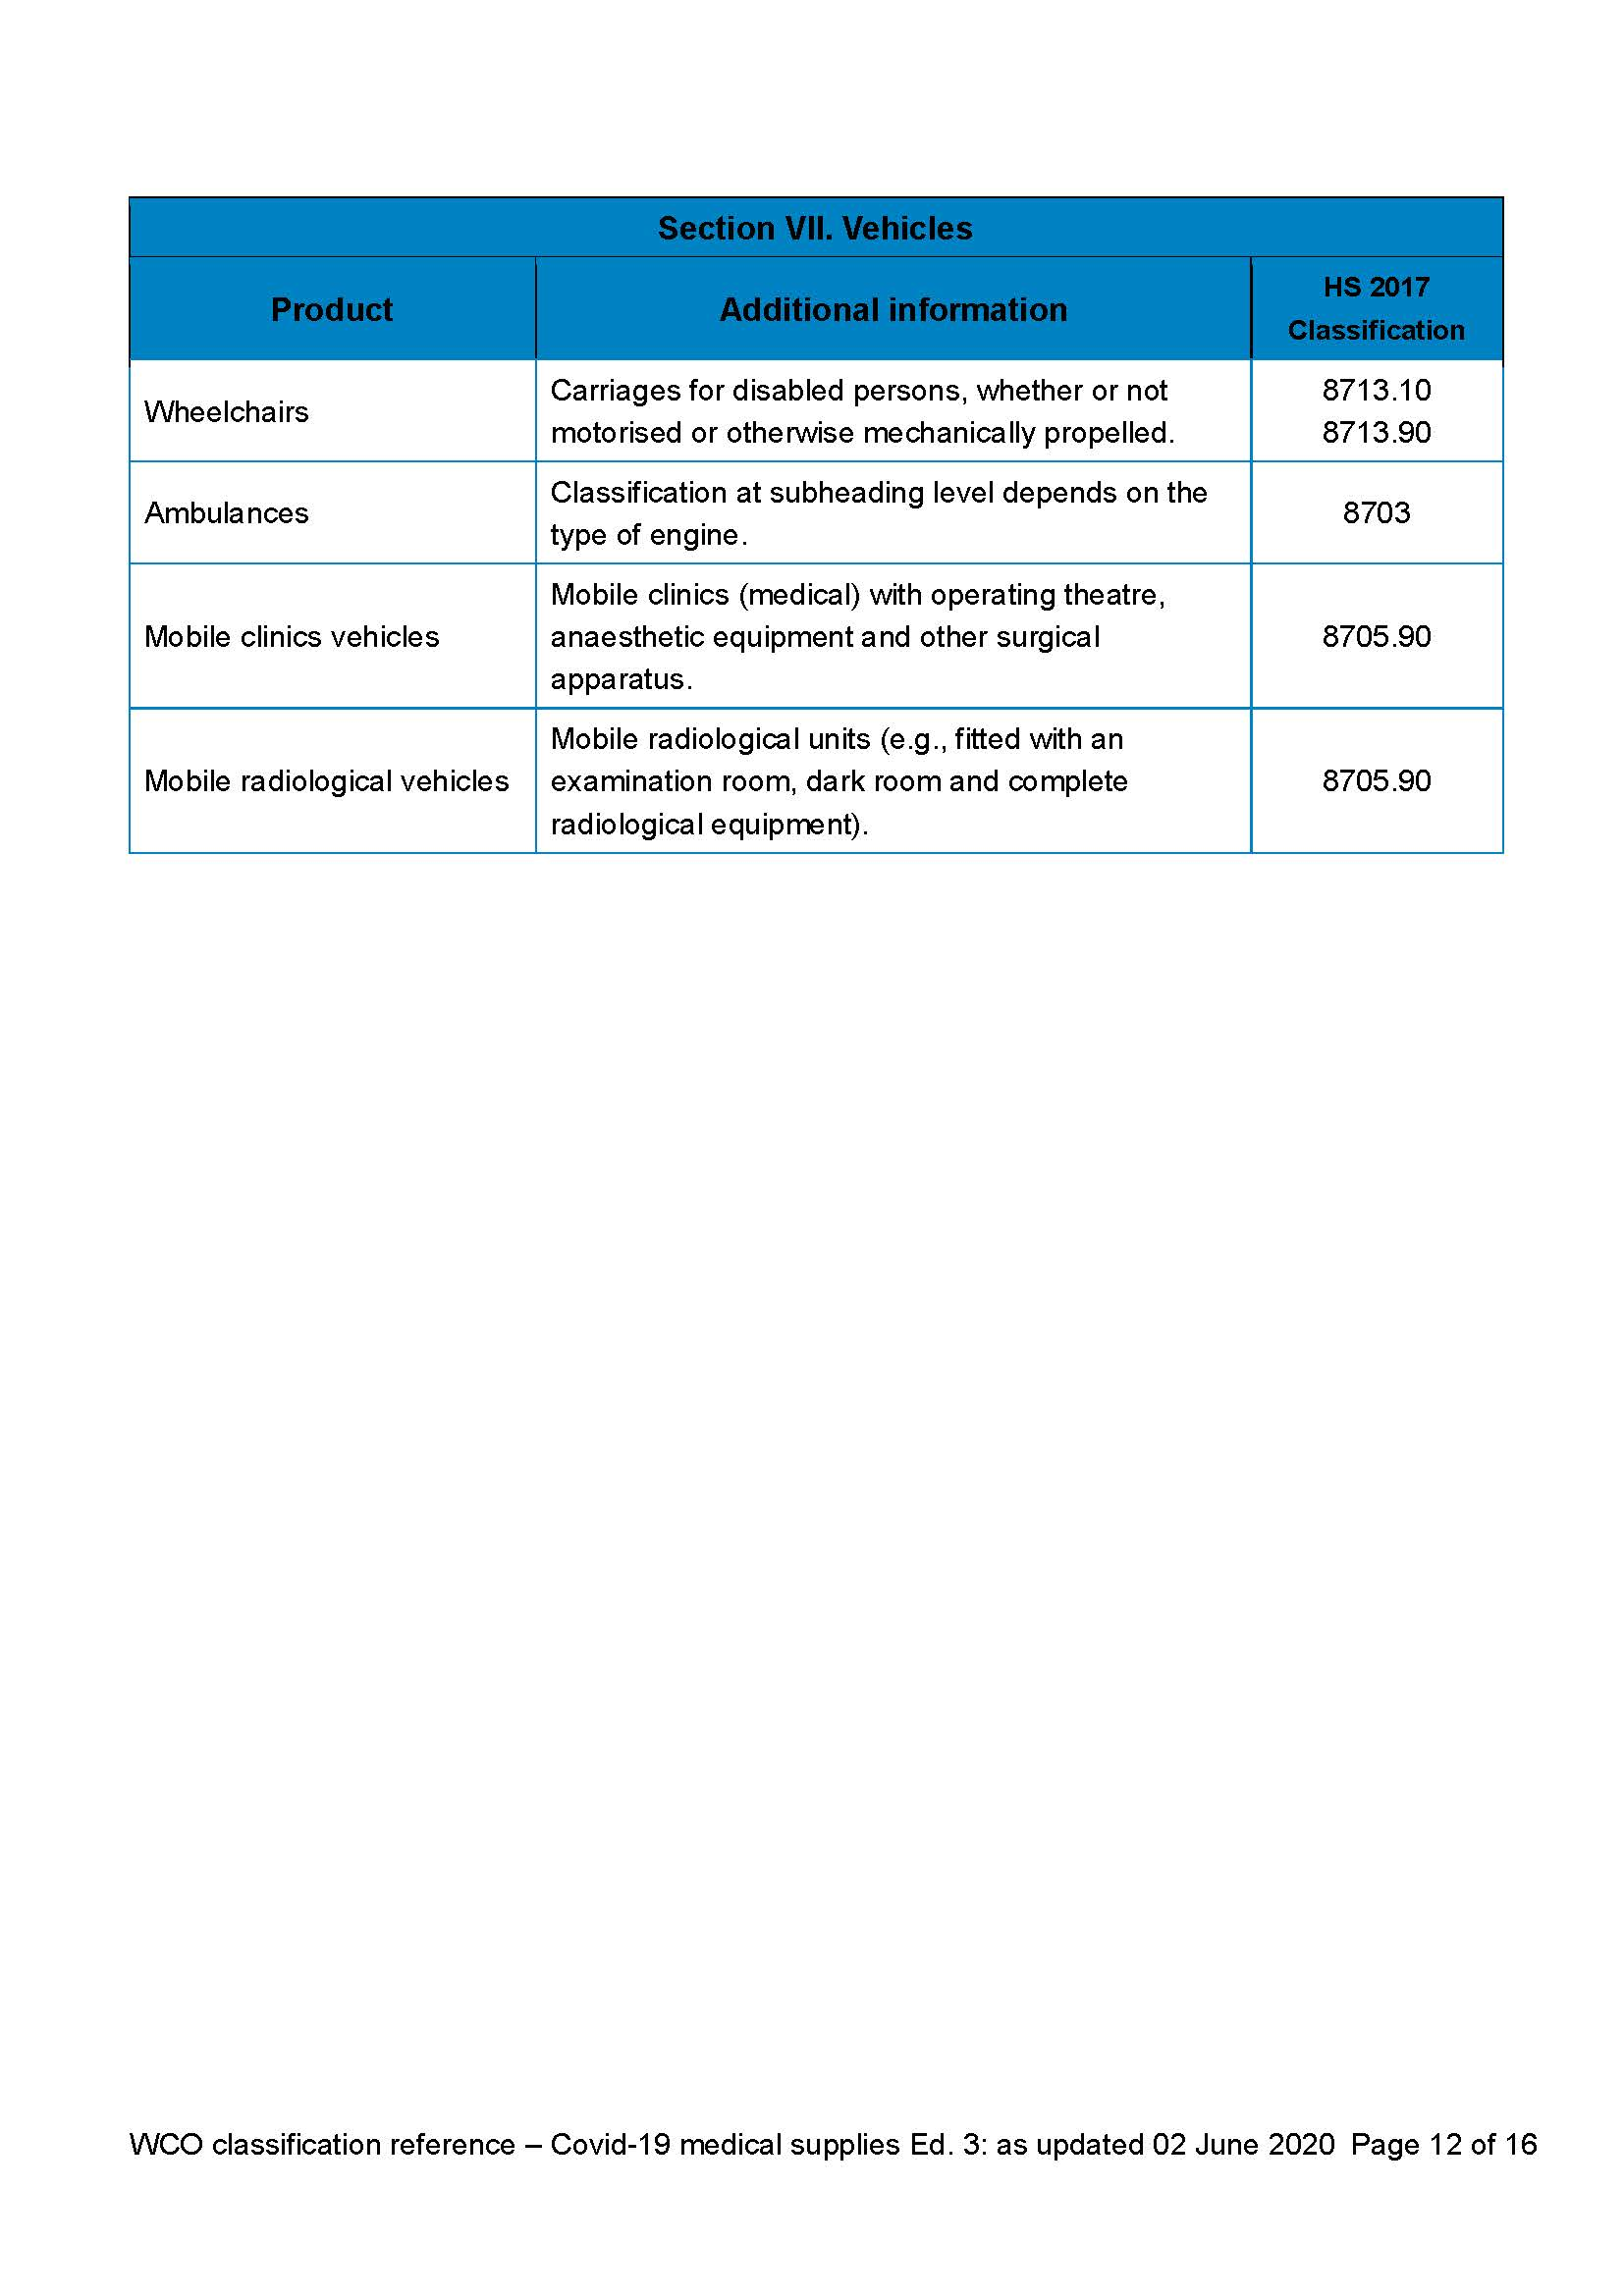 HS classification reference for Covid 19 medical supplies (3.0 Edition)_Sayfa_12